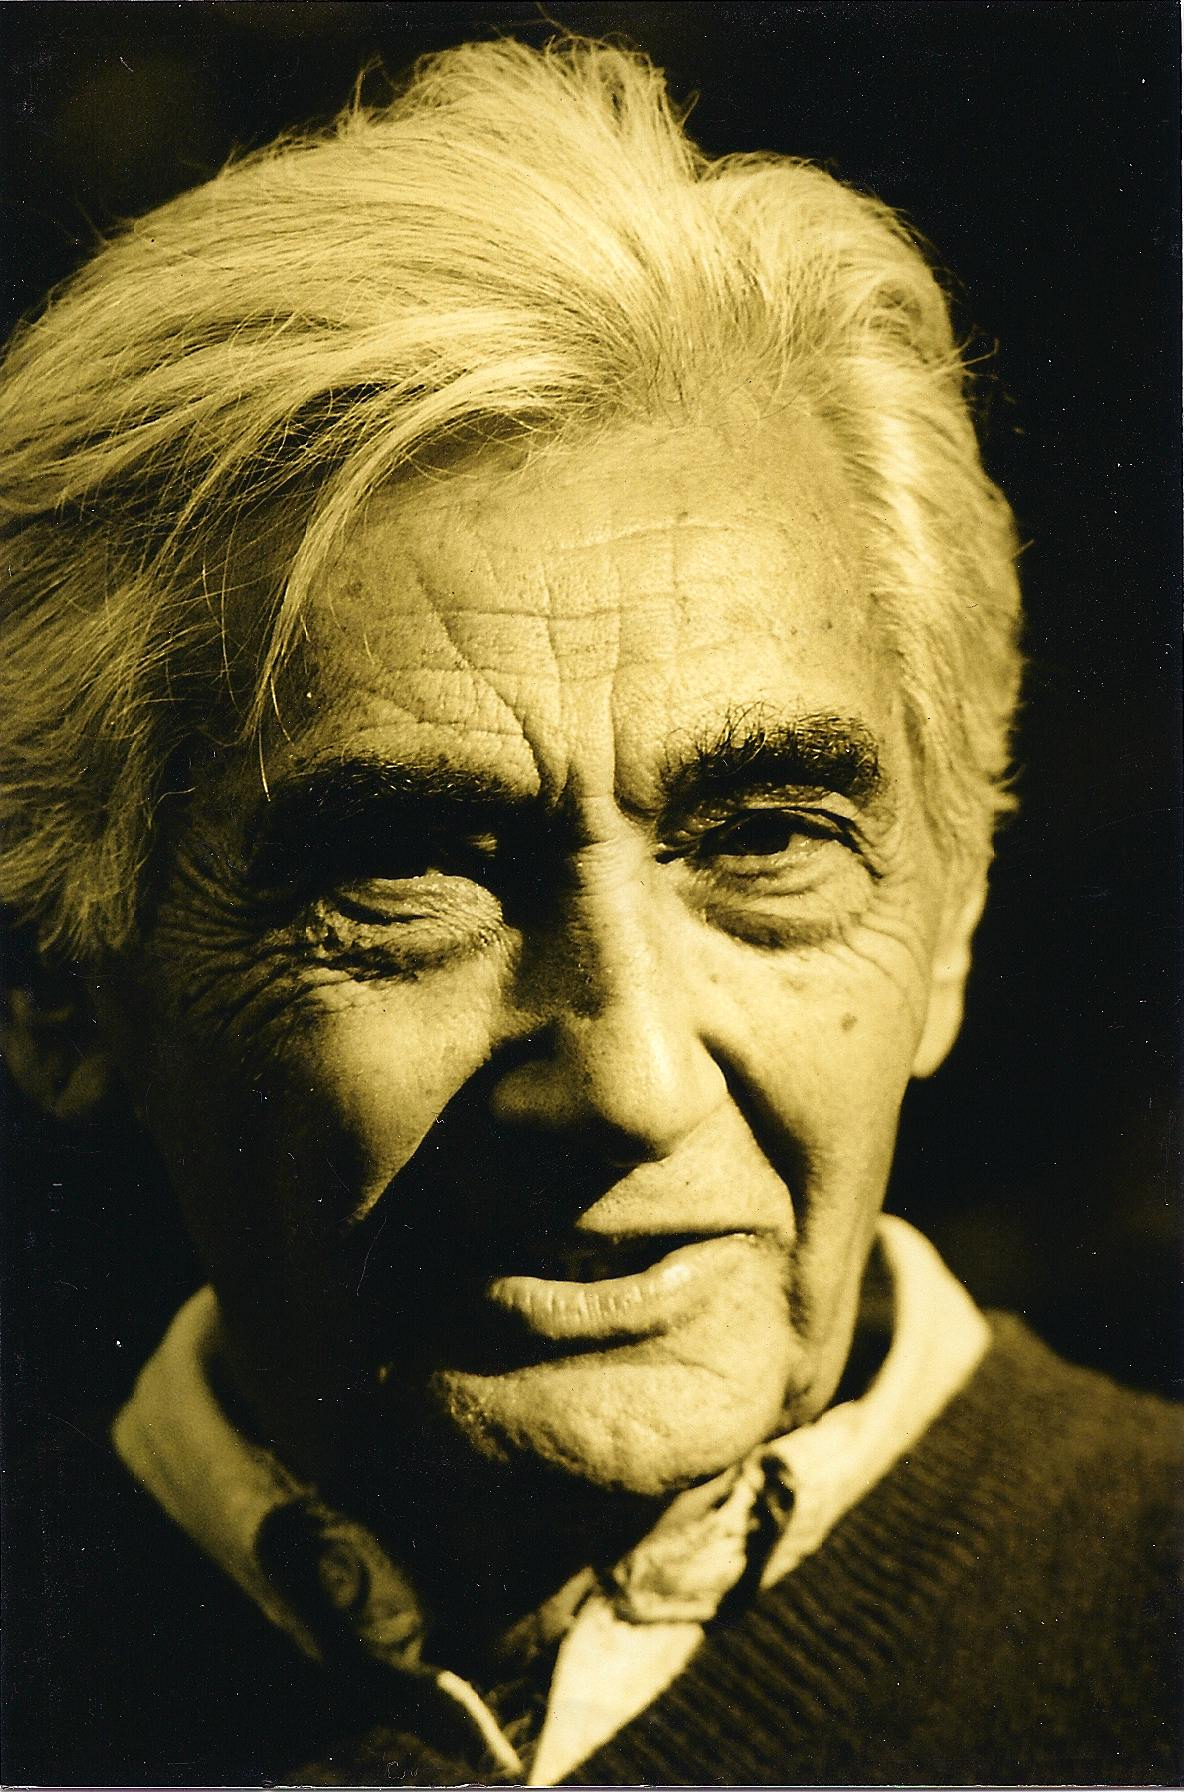 howard zinn and paul johnson Howard zinn you can't be neutral on a moving train : a documentary (dvd) : documents the life and times of the historian, activist and author of the best selling classic a people's history of the united states.